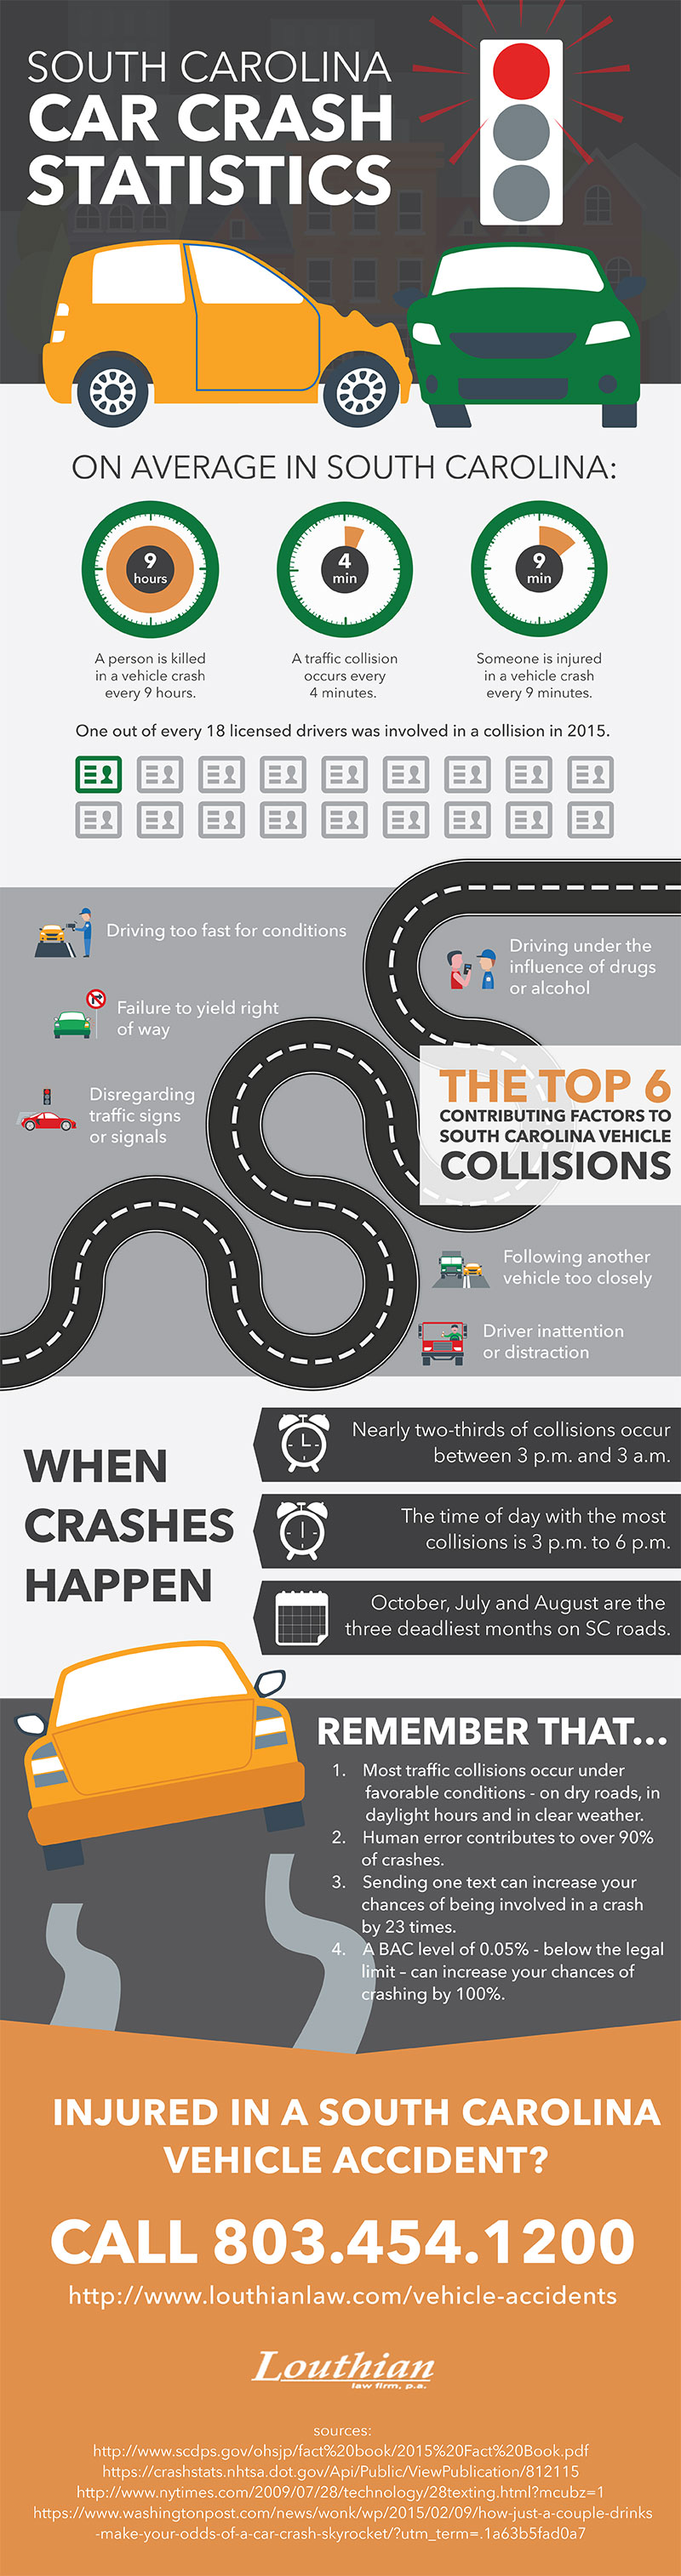 Louthian Vehicle Accidents infographic